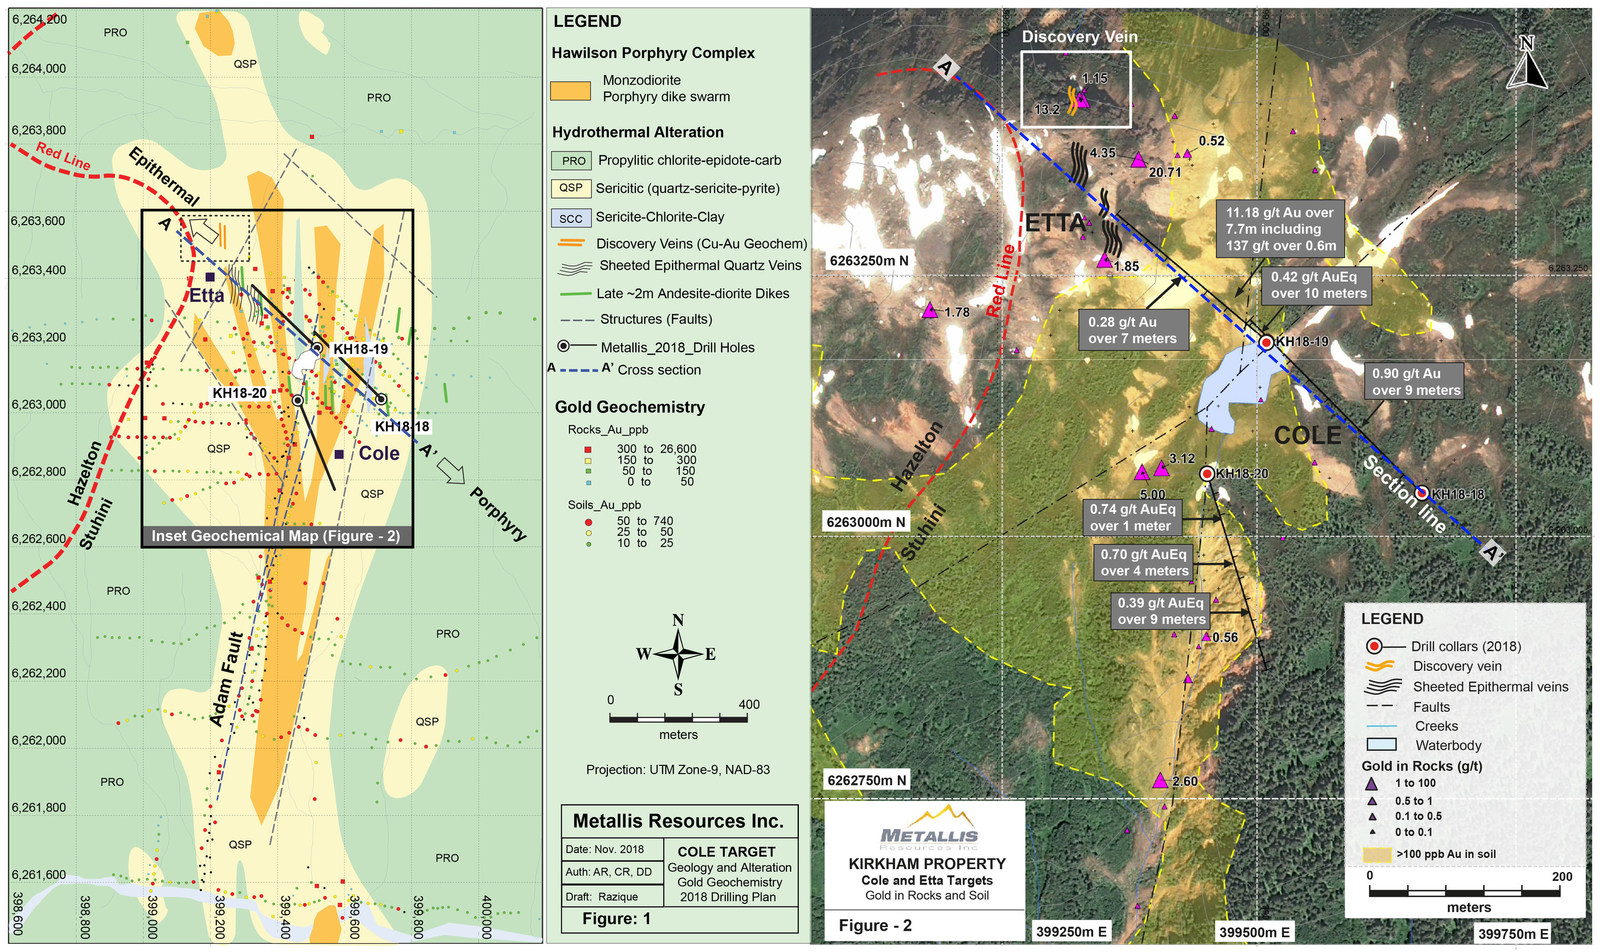 Metallis Resources Inc - Figures 1 & 2 - Cole Target Geology, Alteration and Gold Geochemistry, Drilling Plan Map